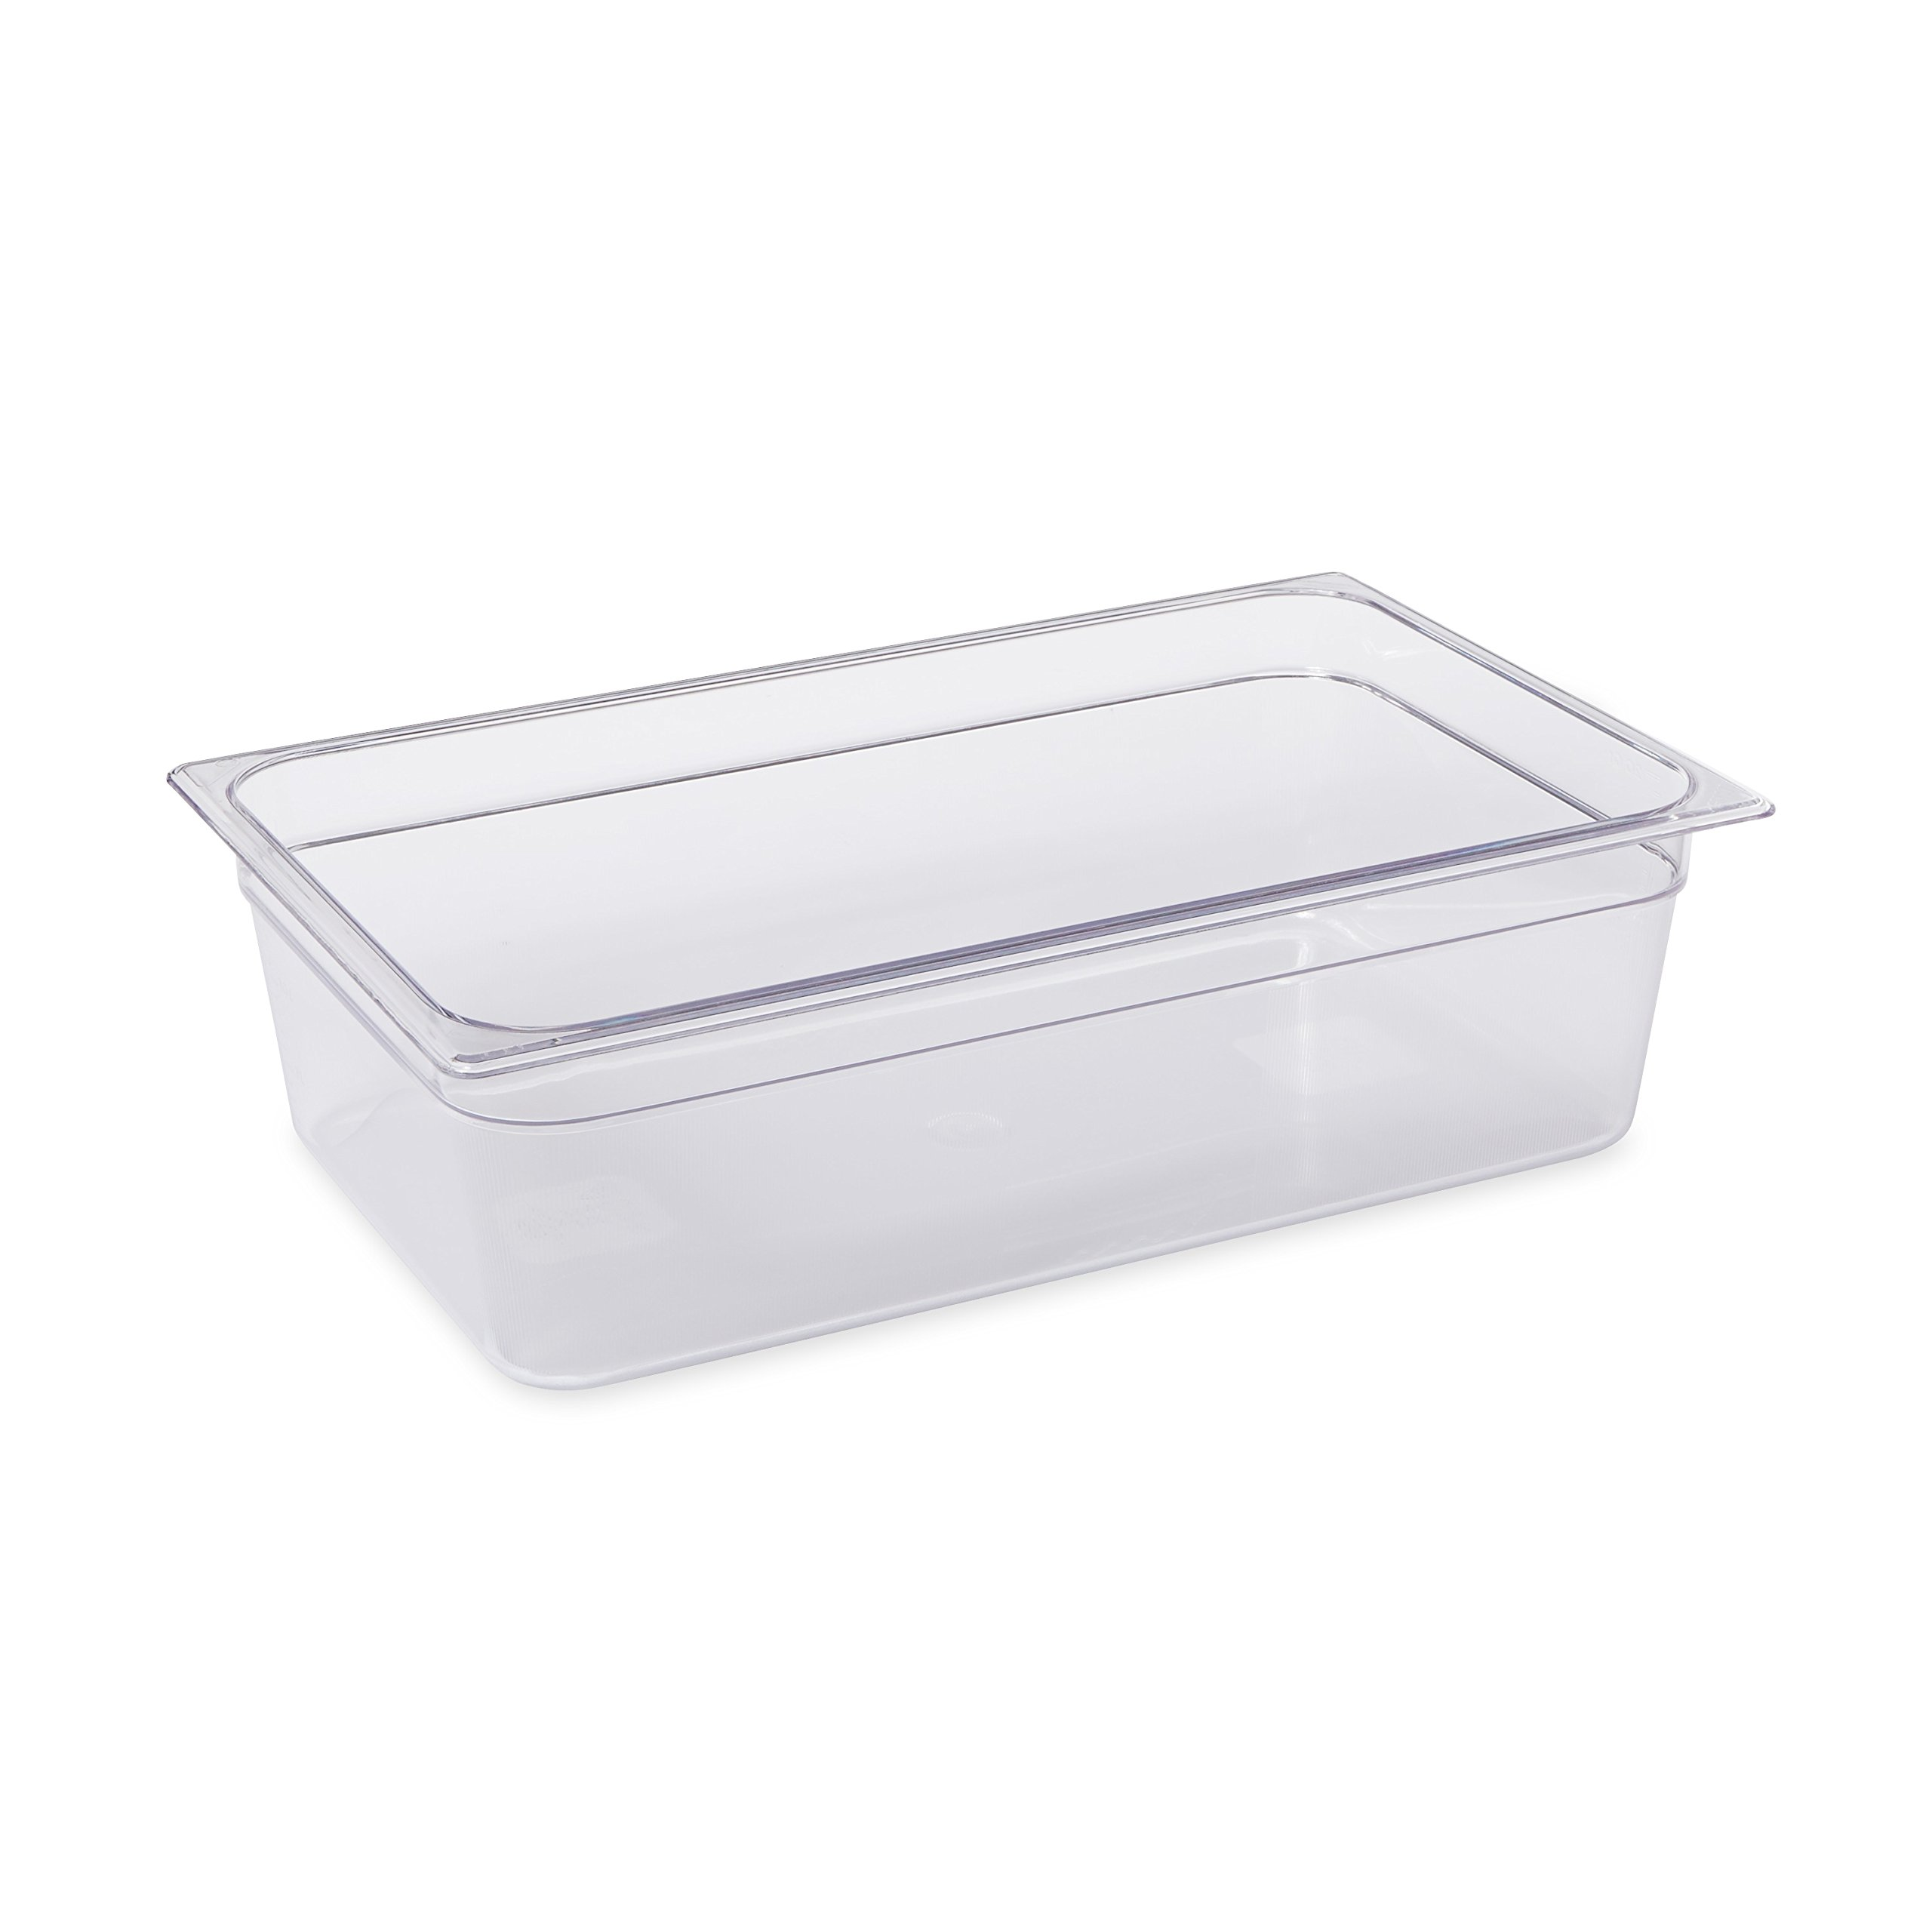 Rubbermaid Commercial Products FG132P00CLR Full Size 20-5/8-Quart Cold Food Pan